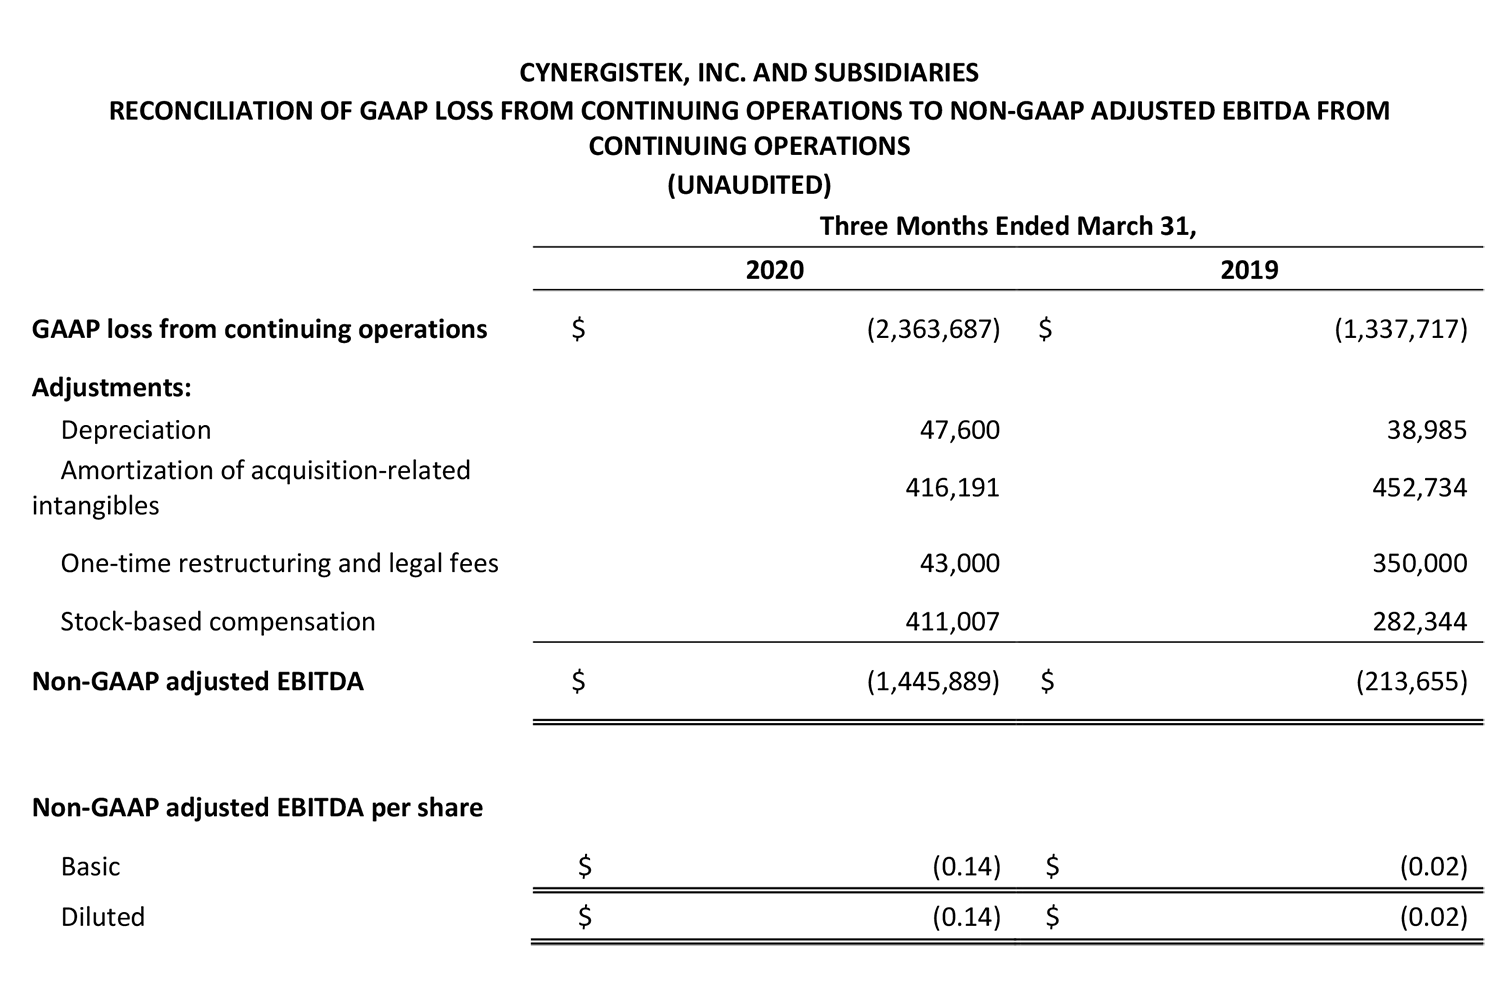 First quarter 2020 financial results